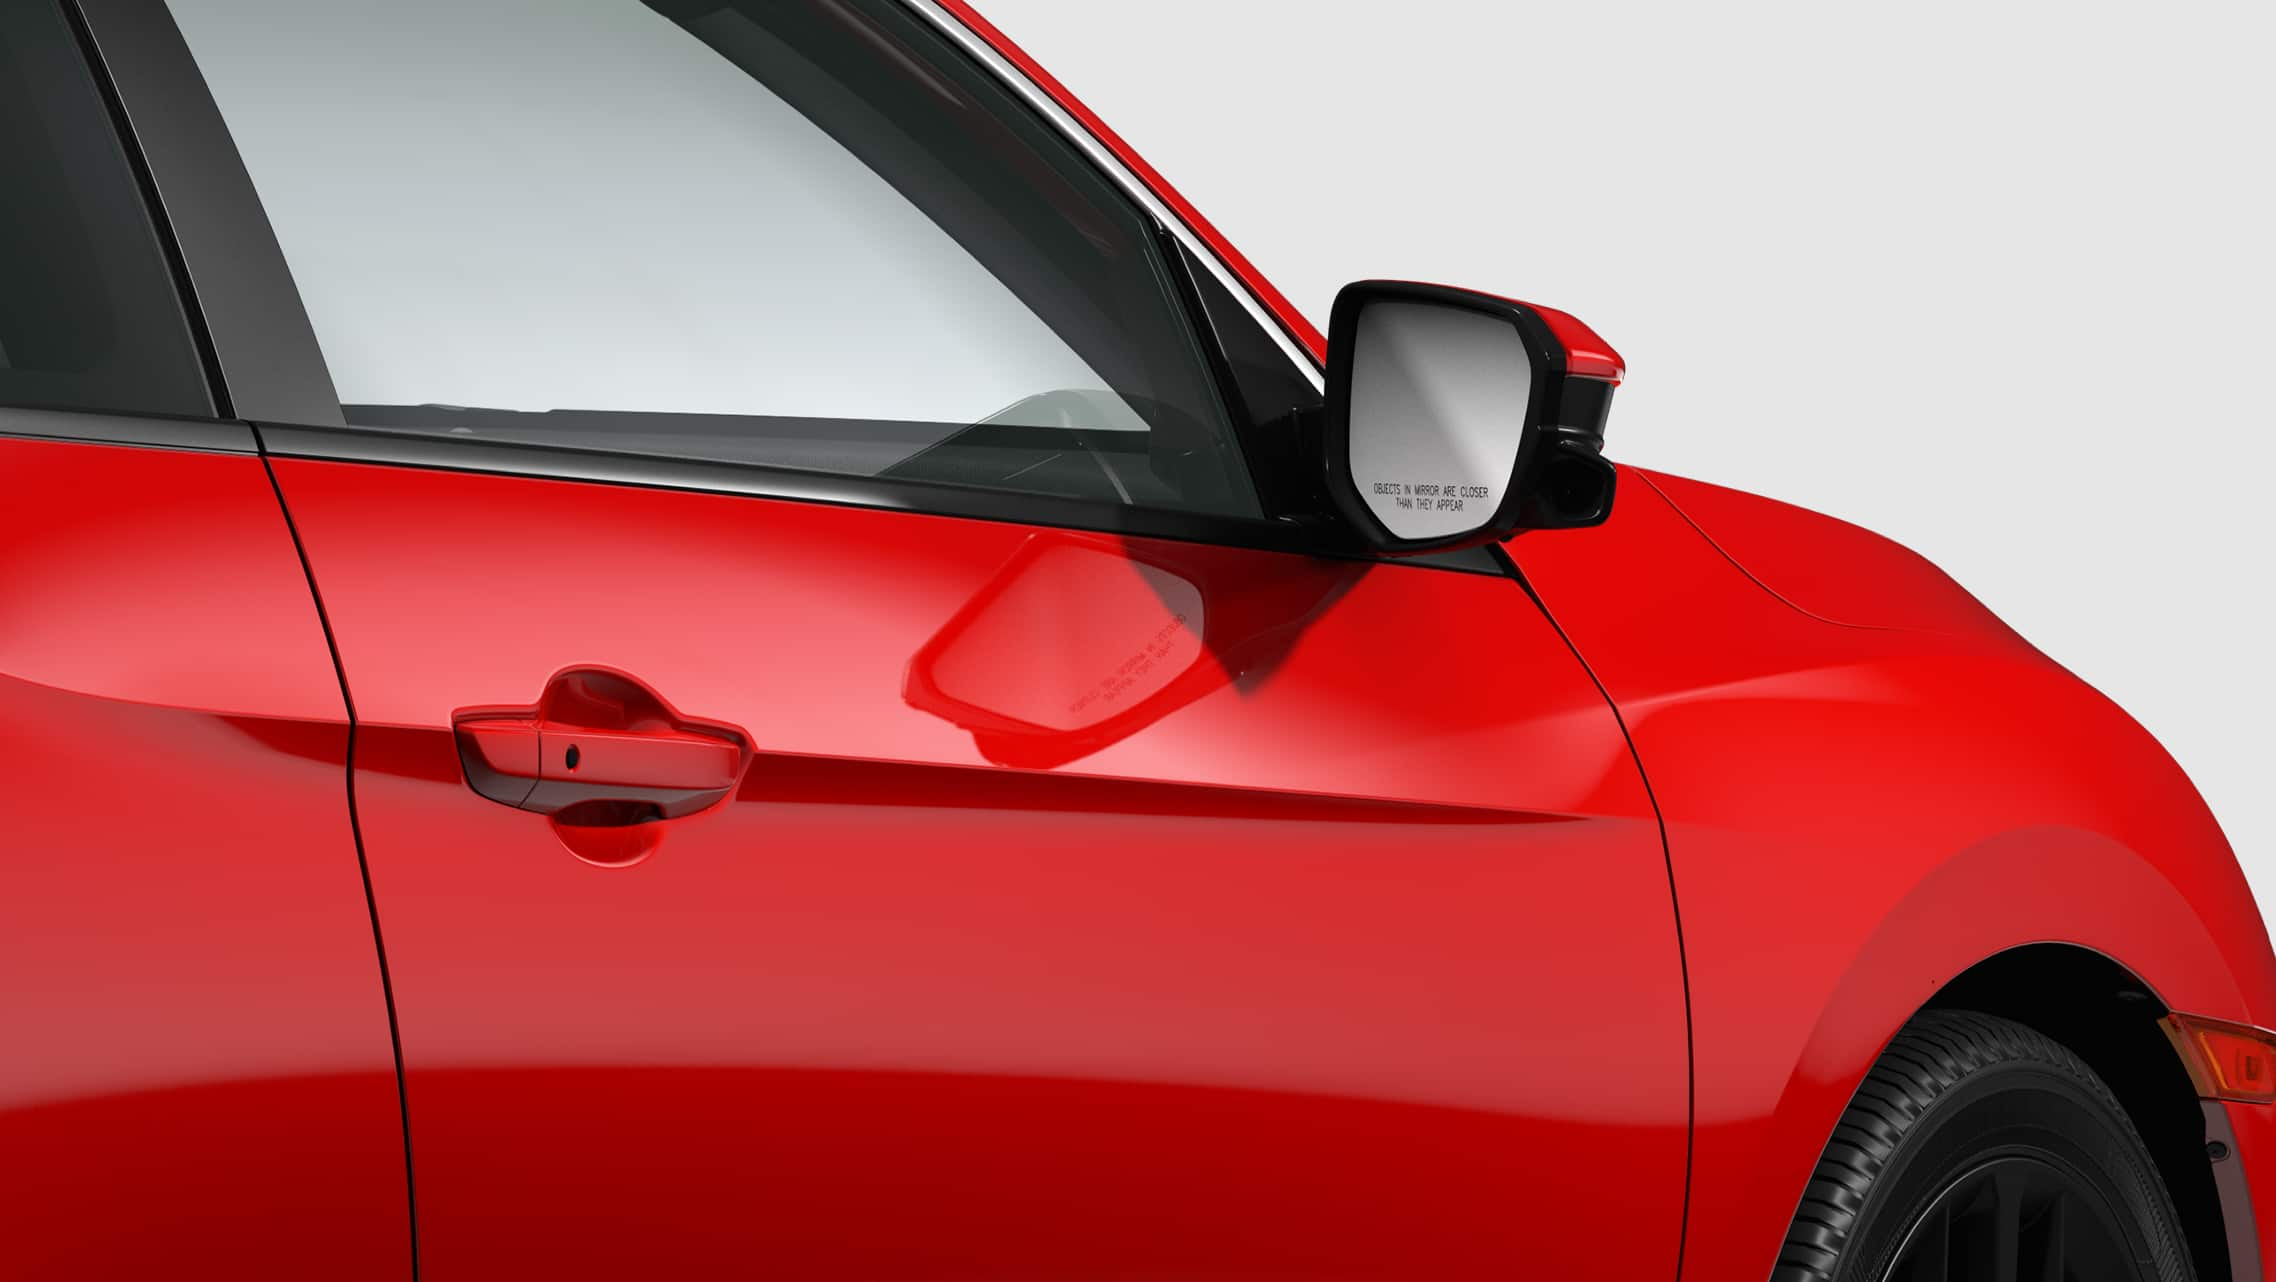 Honda LaneWatch™ camera detail on passenger's side mirror on 2020 Honda Civic Si Coupe in Rallye Red.